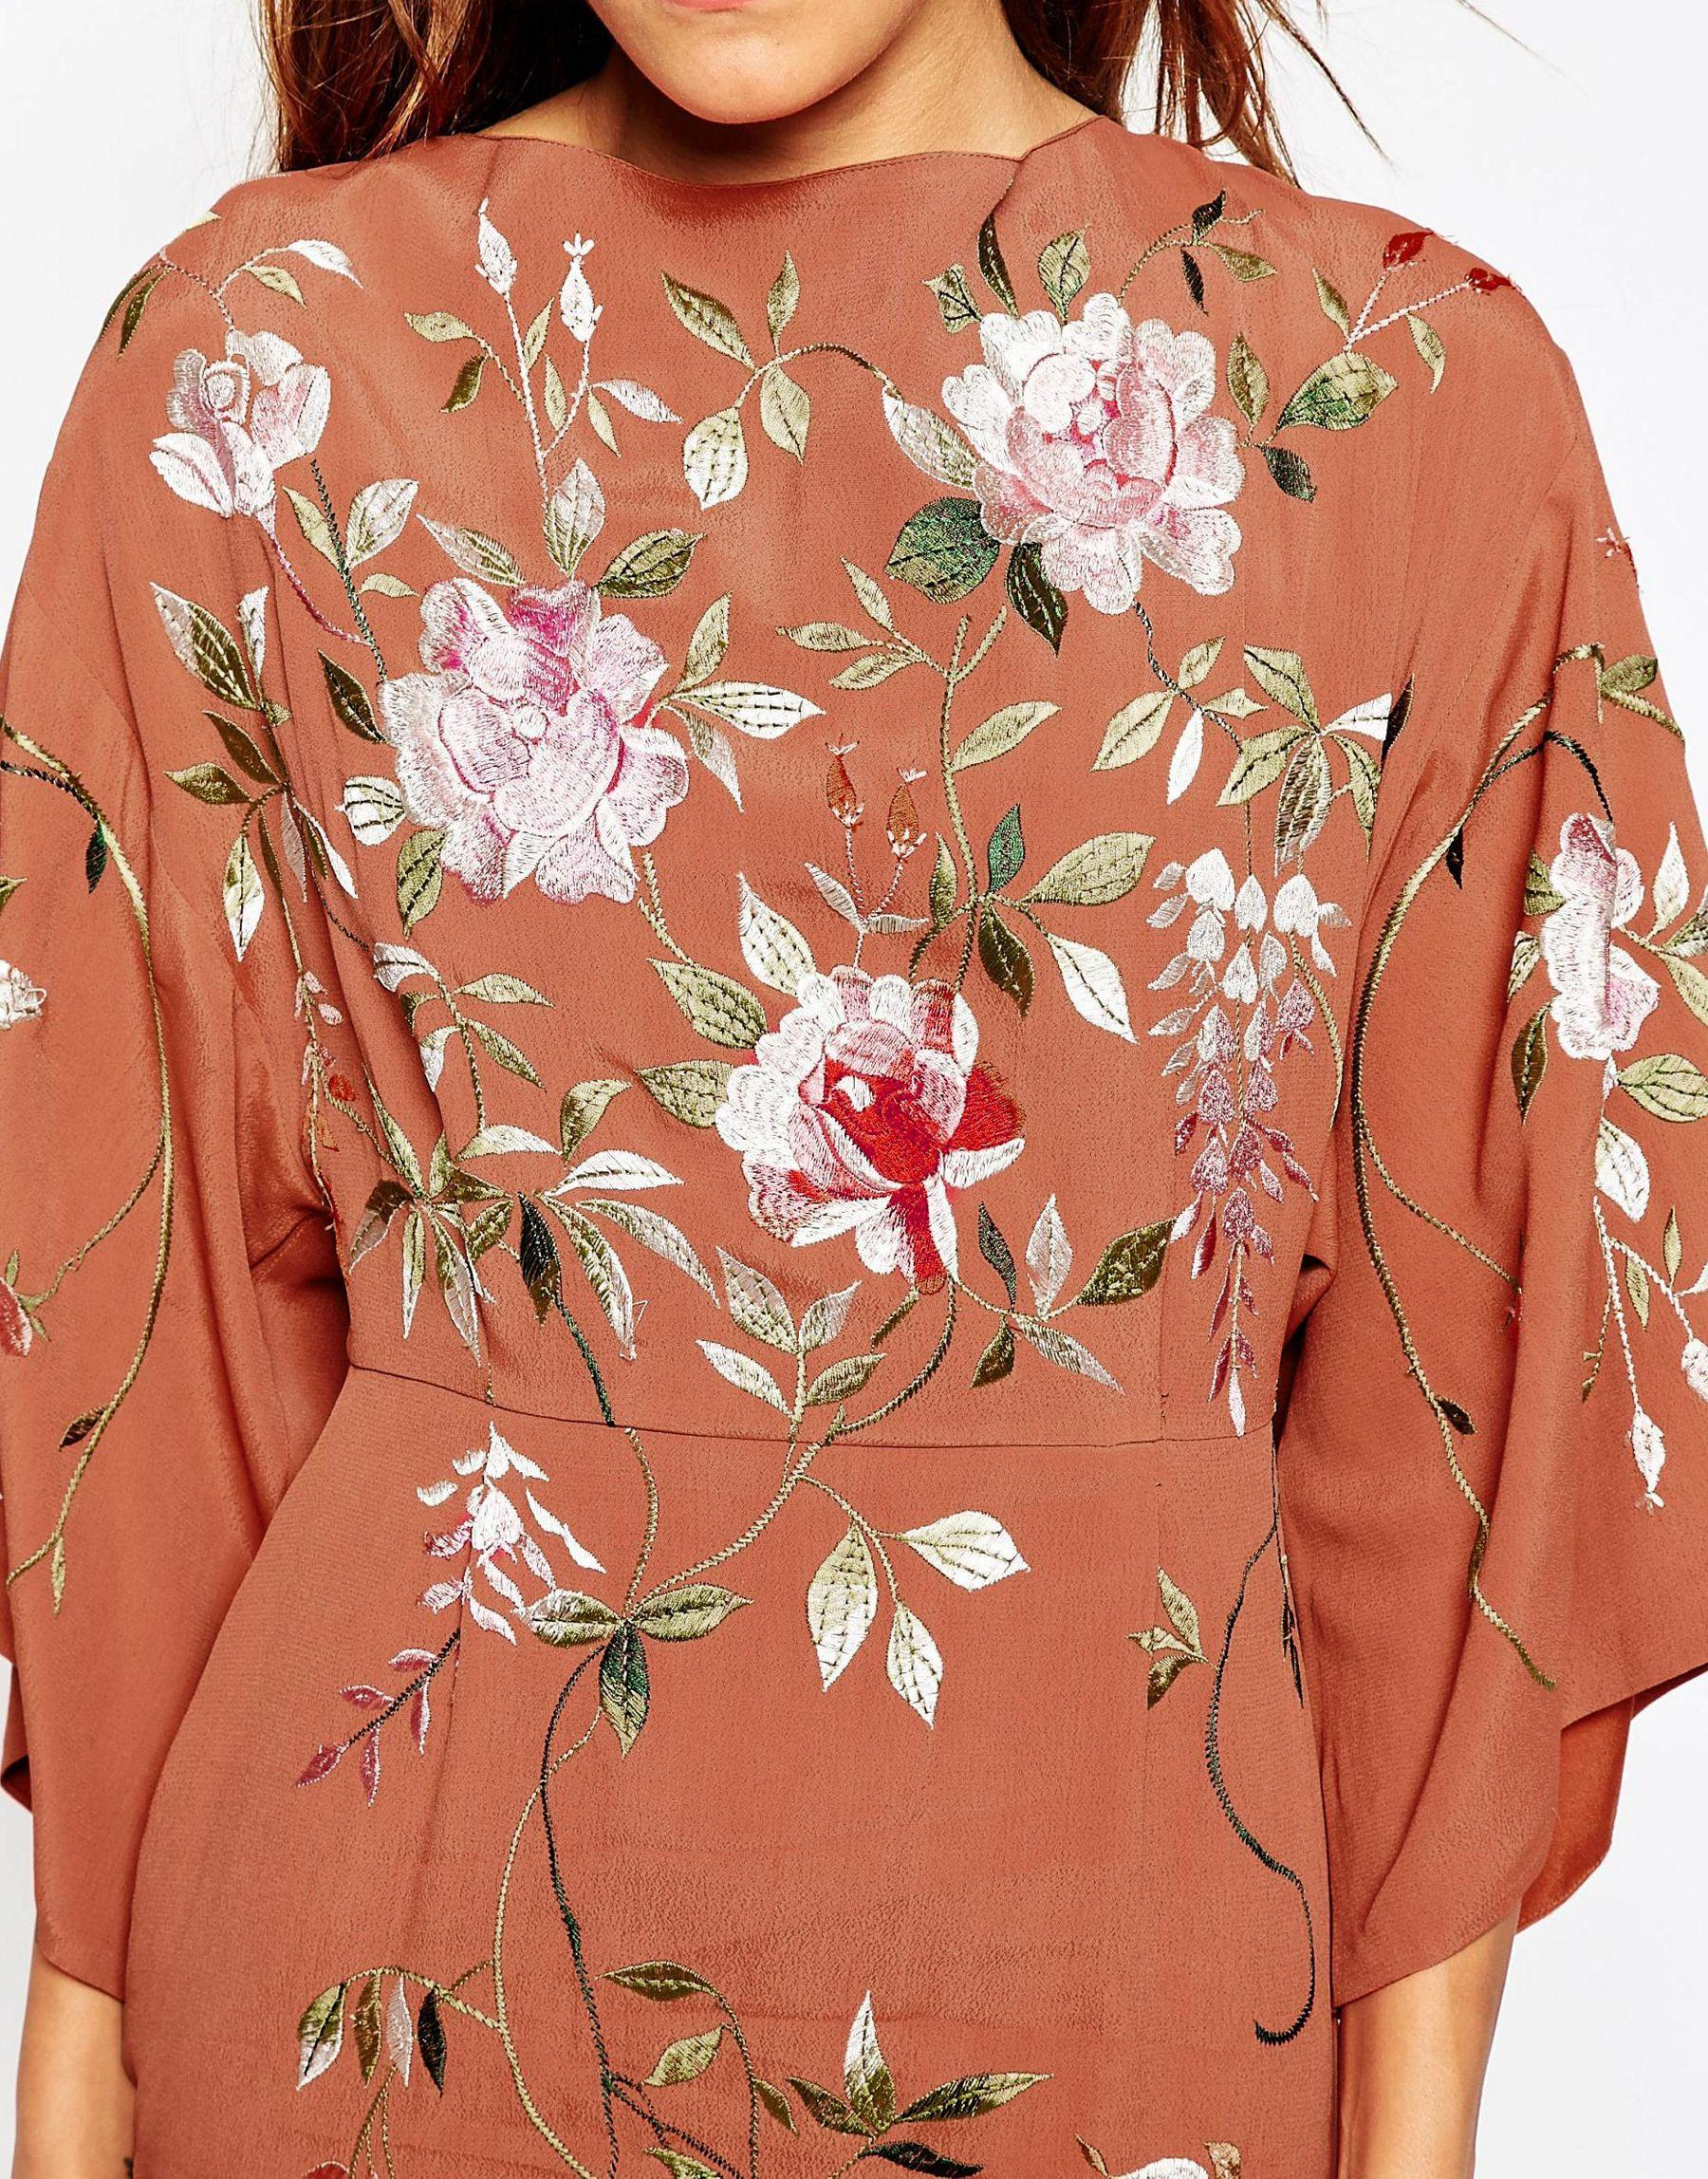 8a4337ade8c78 ASOS Petite Embroidered Kimono Sleeve Mini Dress in Brown - Lyst